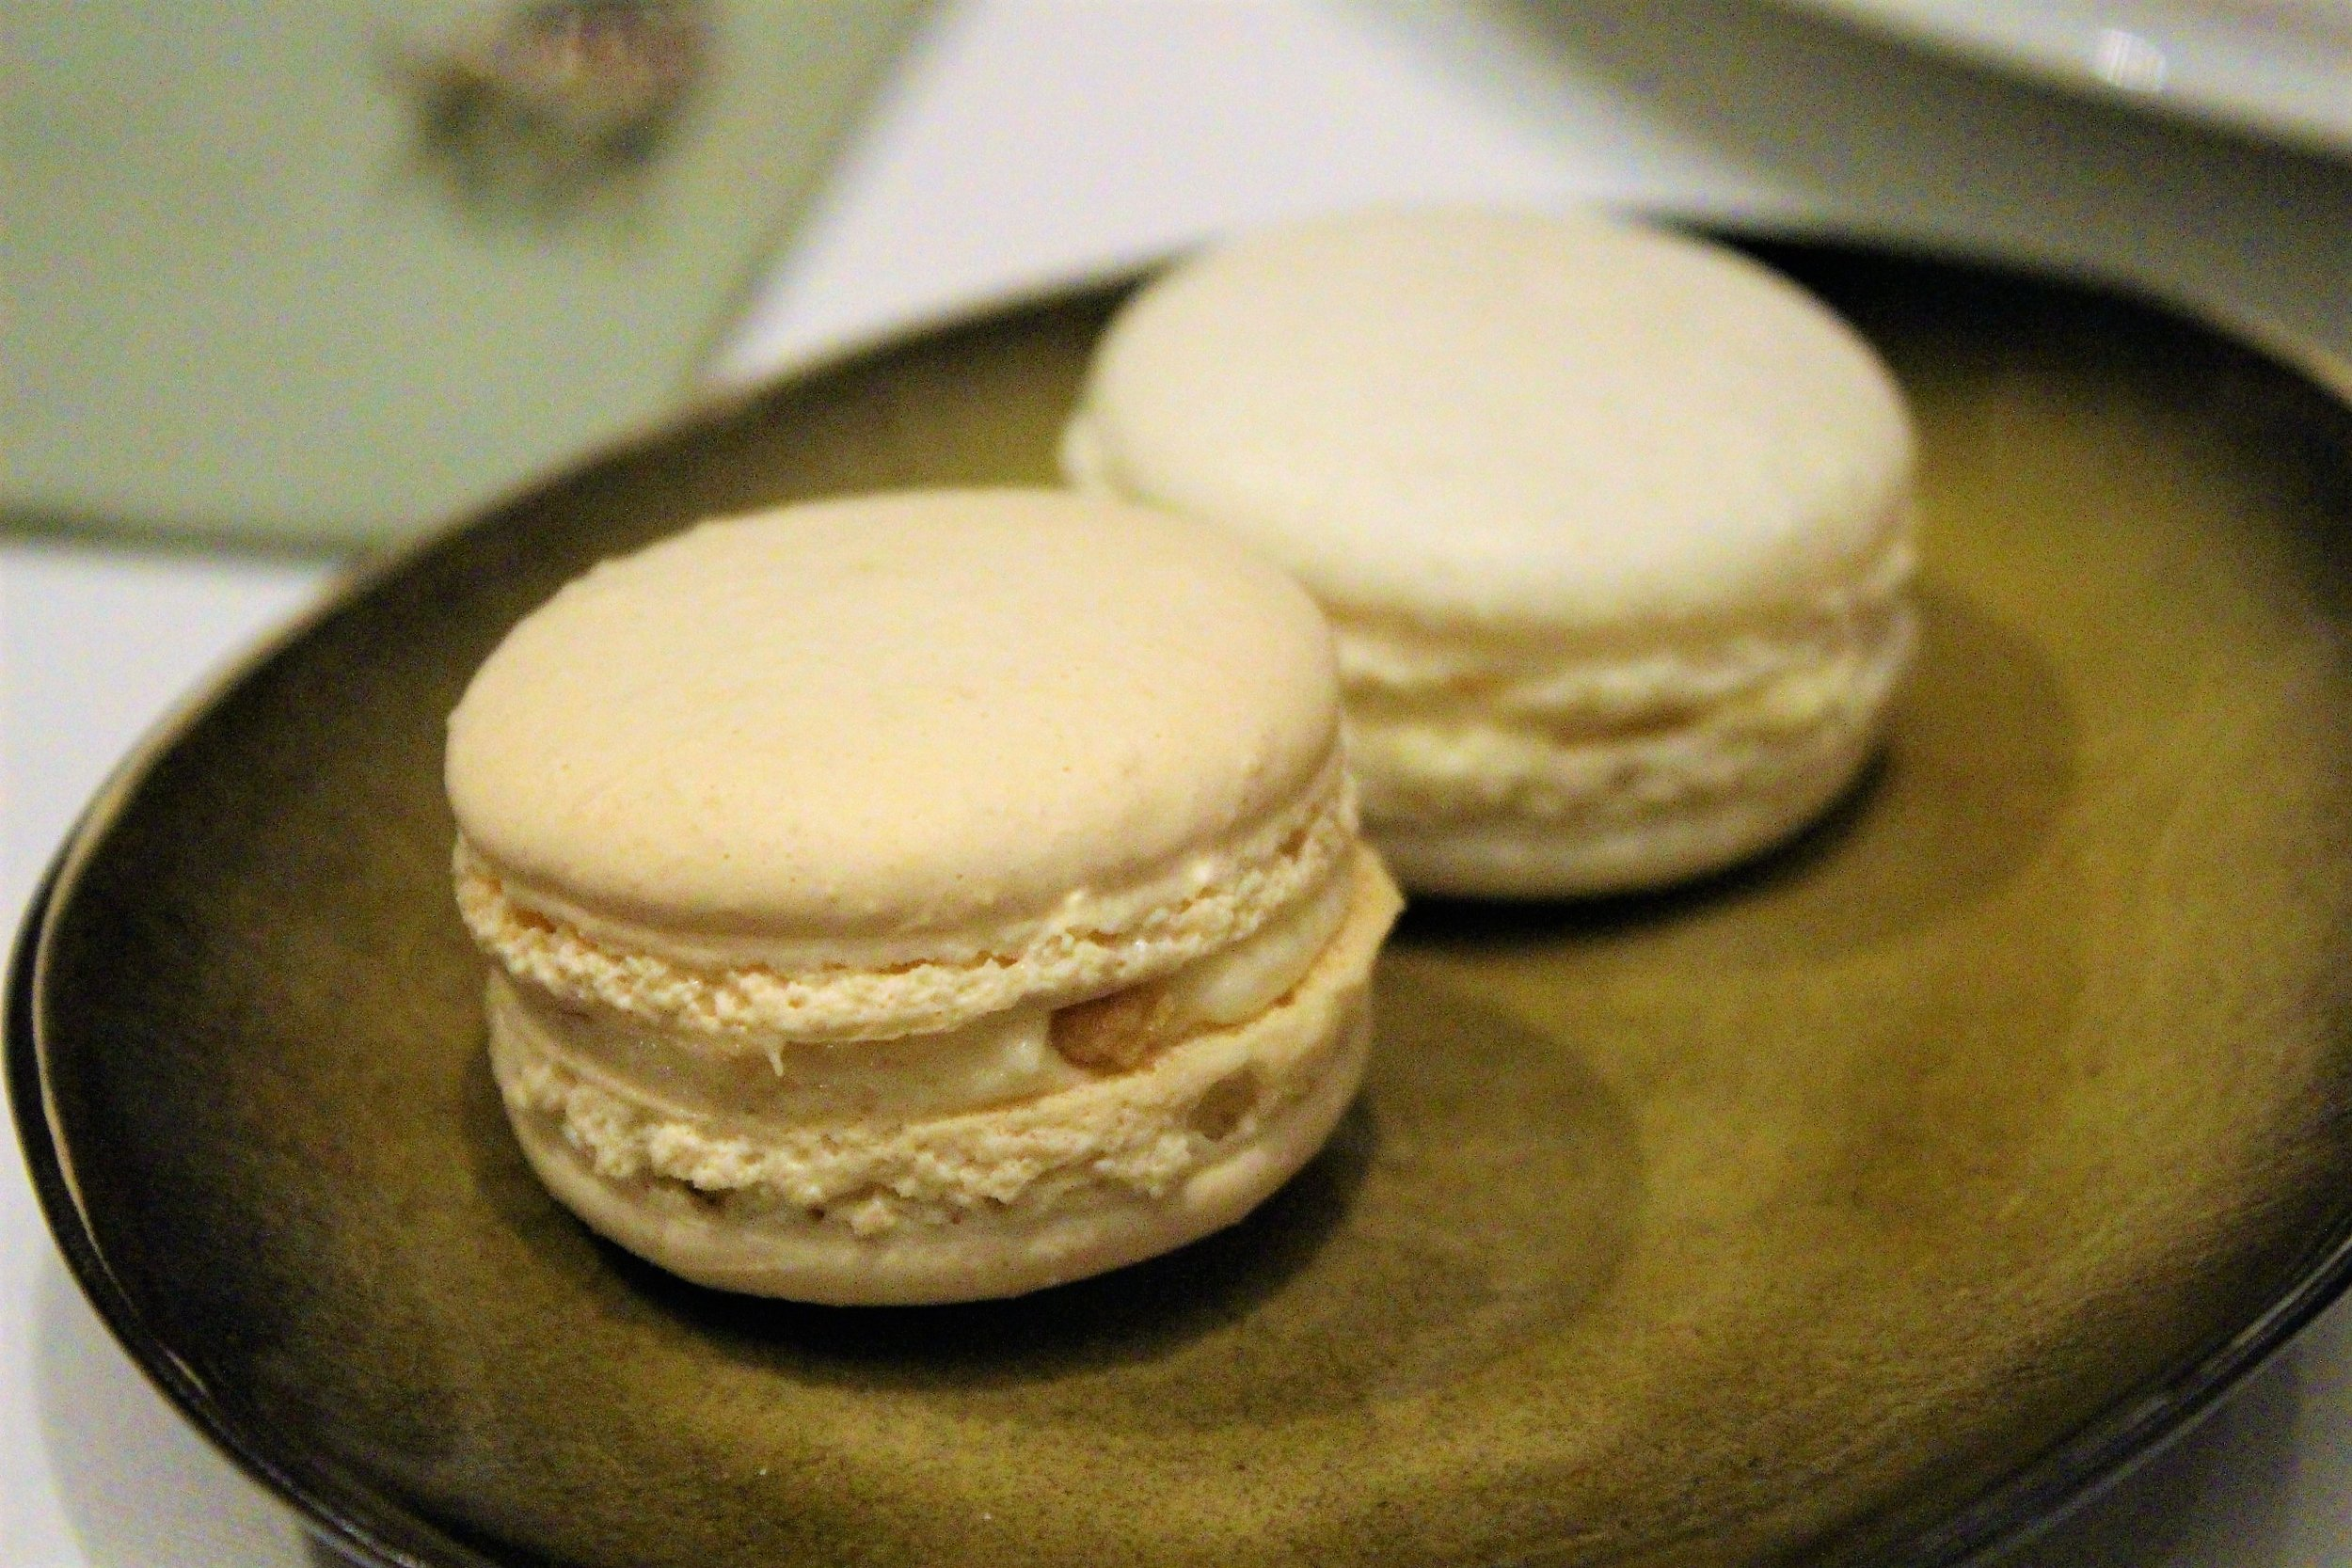 Macarons at Gabriel Kreuther in New York City